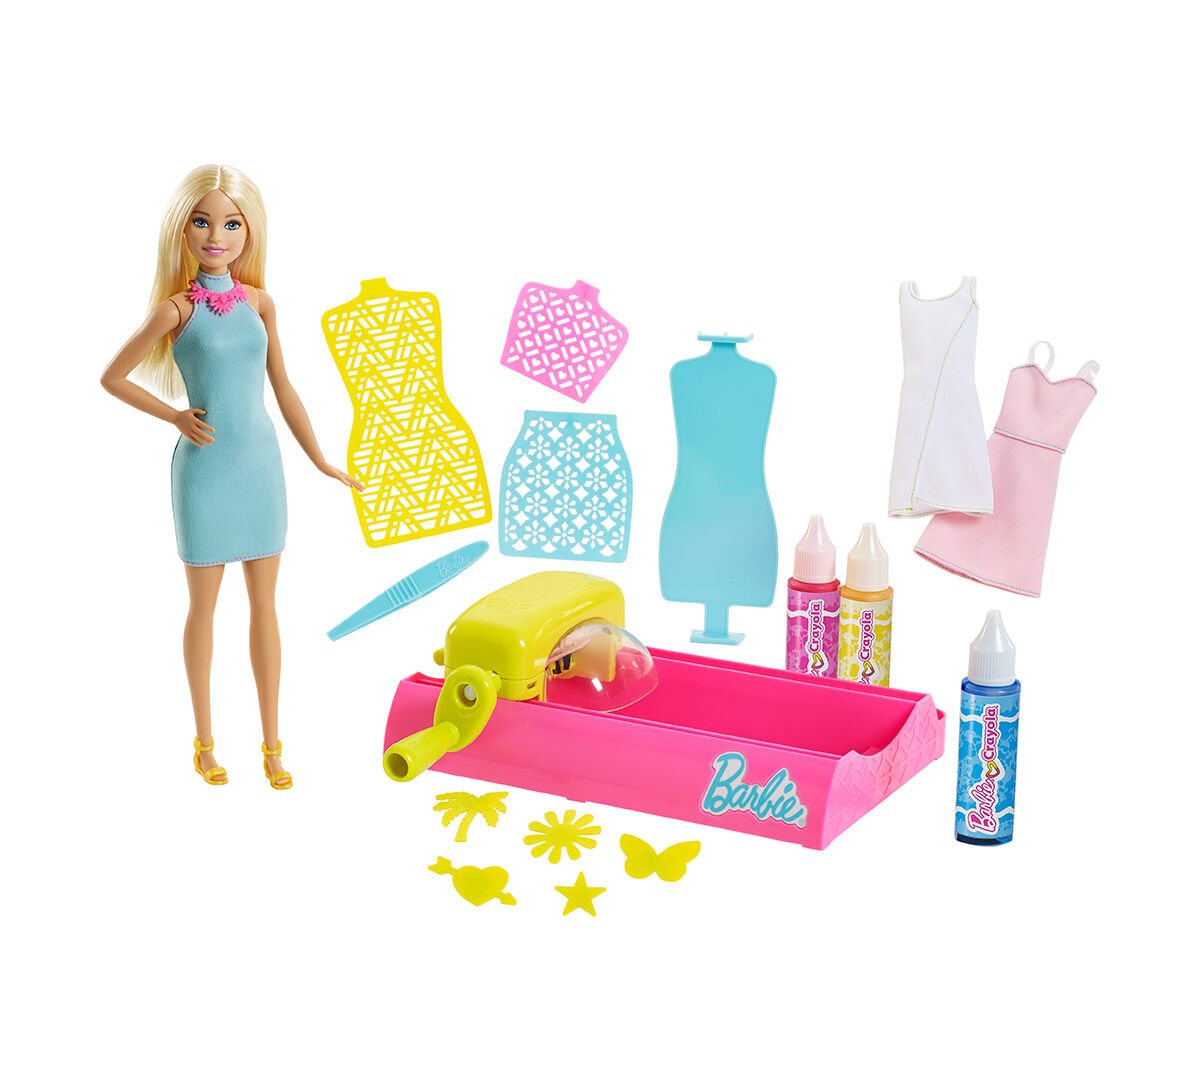 7 Pairs of Shoes Made to Fit the Barbie Doll